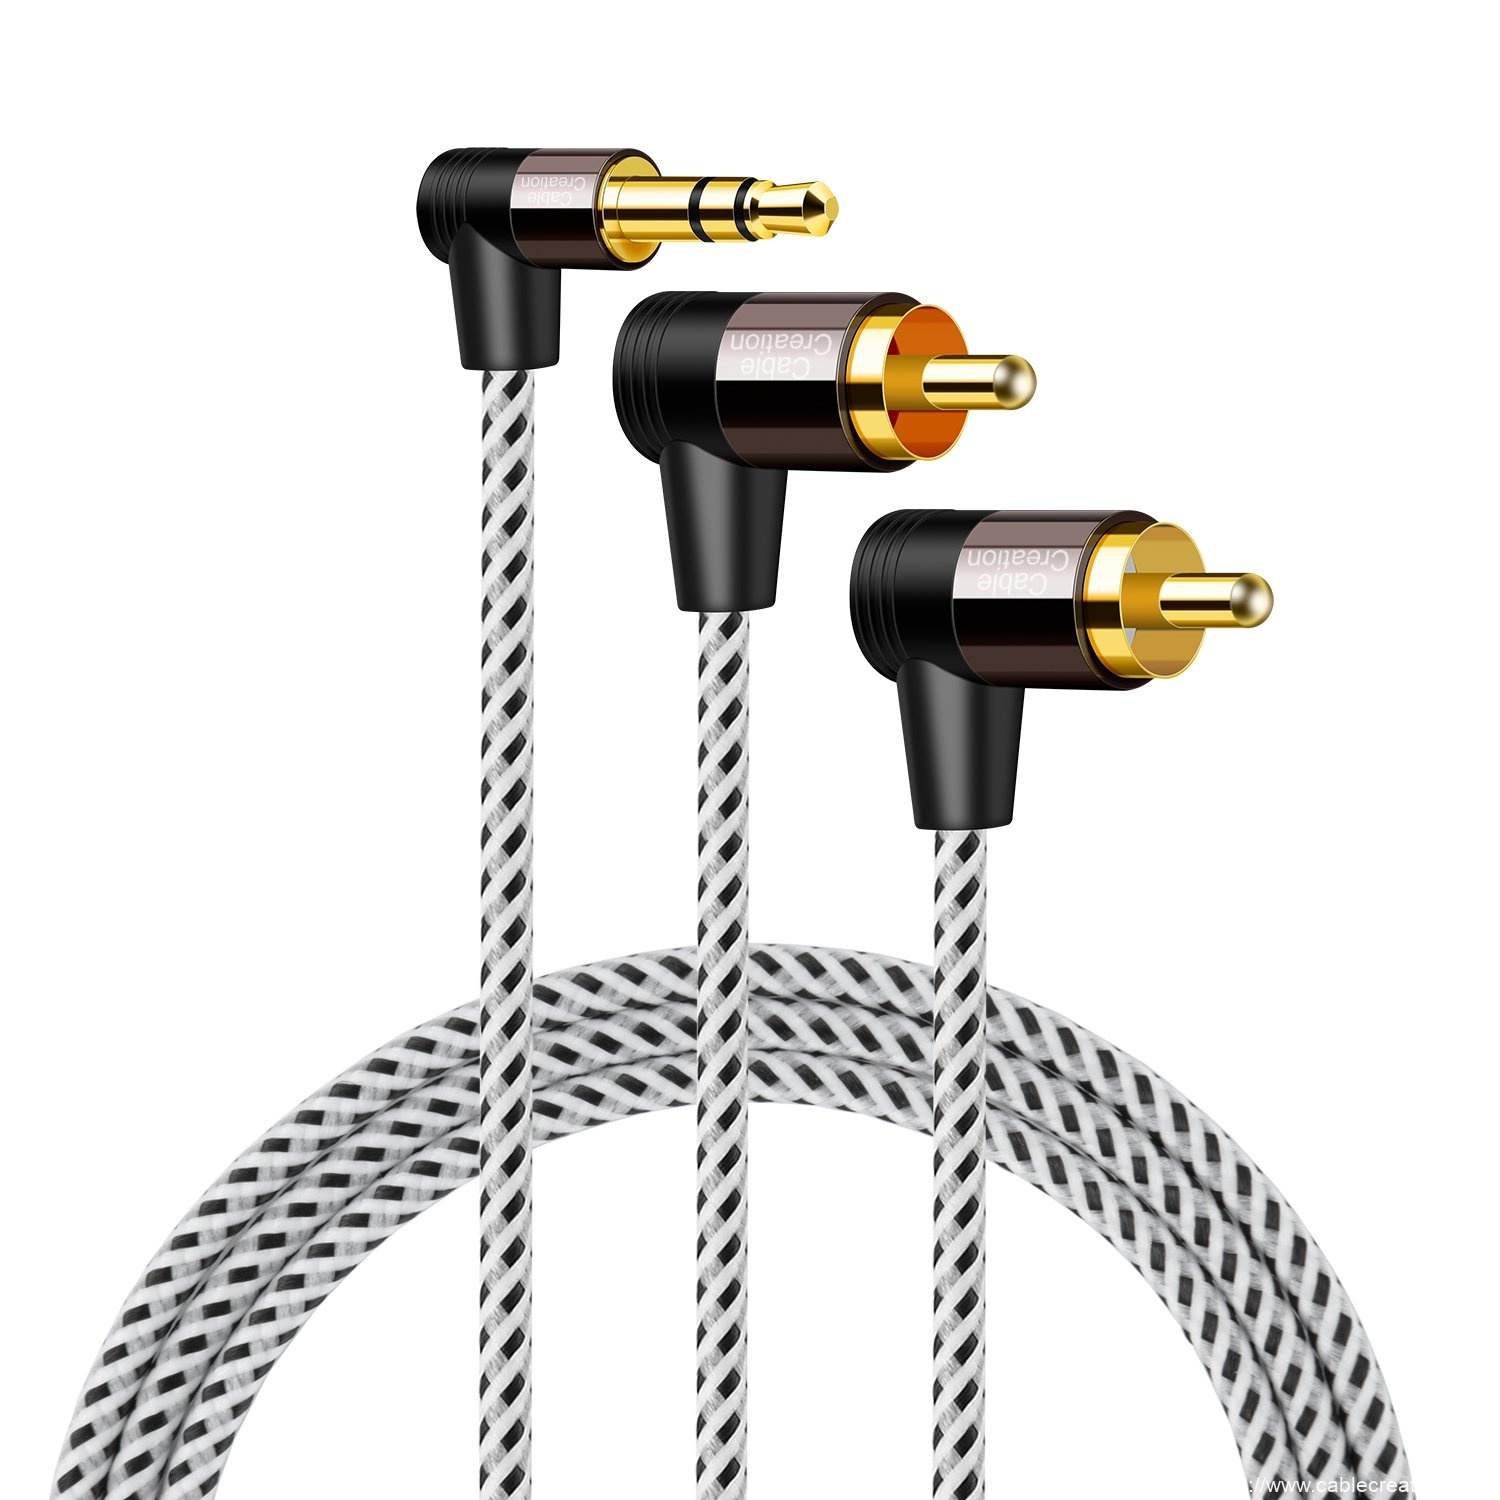 Short Lead Time for Hdmi To Dp - 3.5mm to RCA Cable 5 Feet/ 1.5Meters, #CC0776 – CableCreation